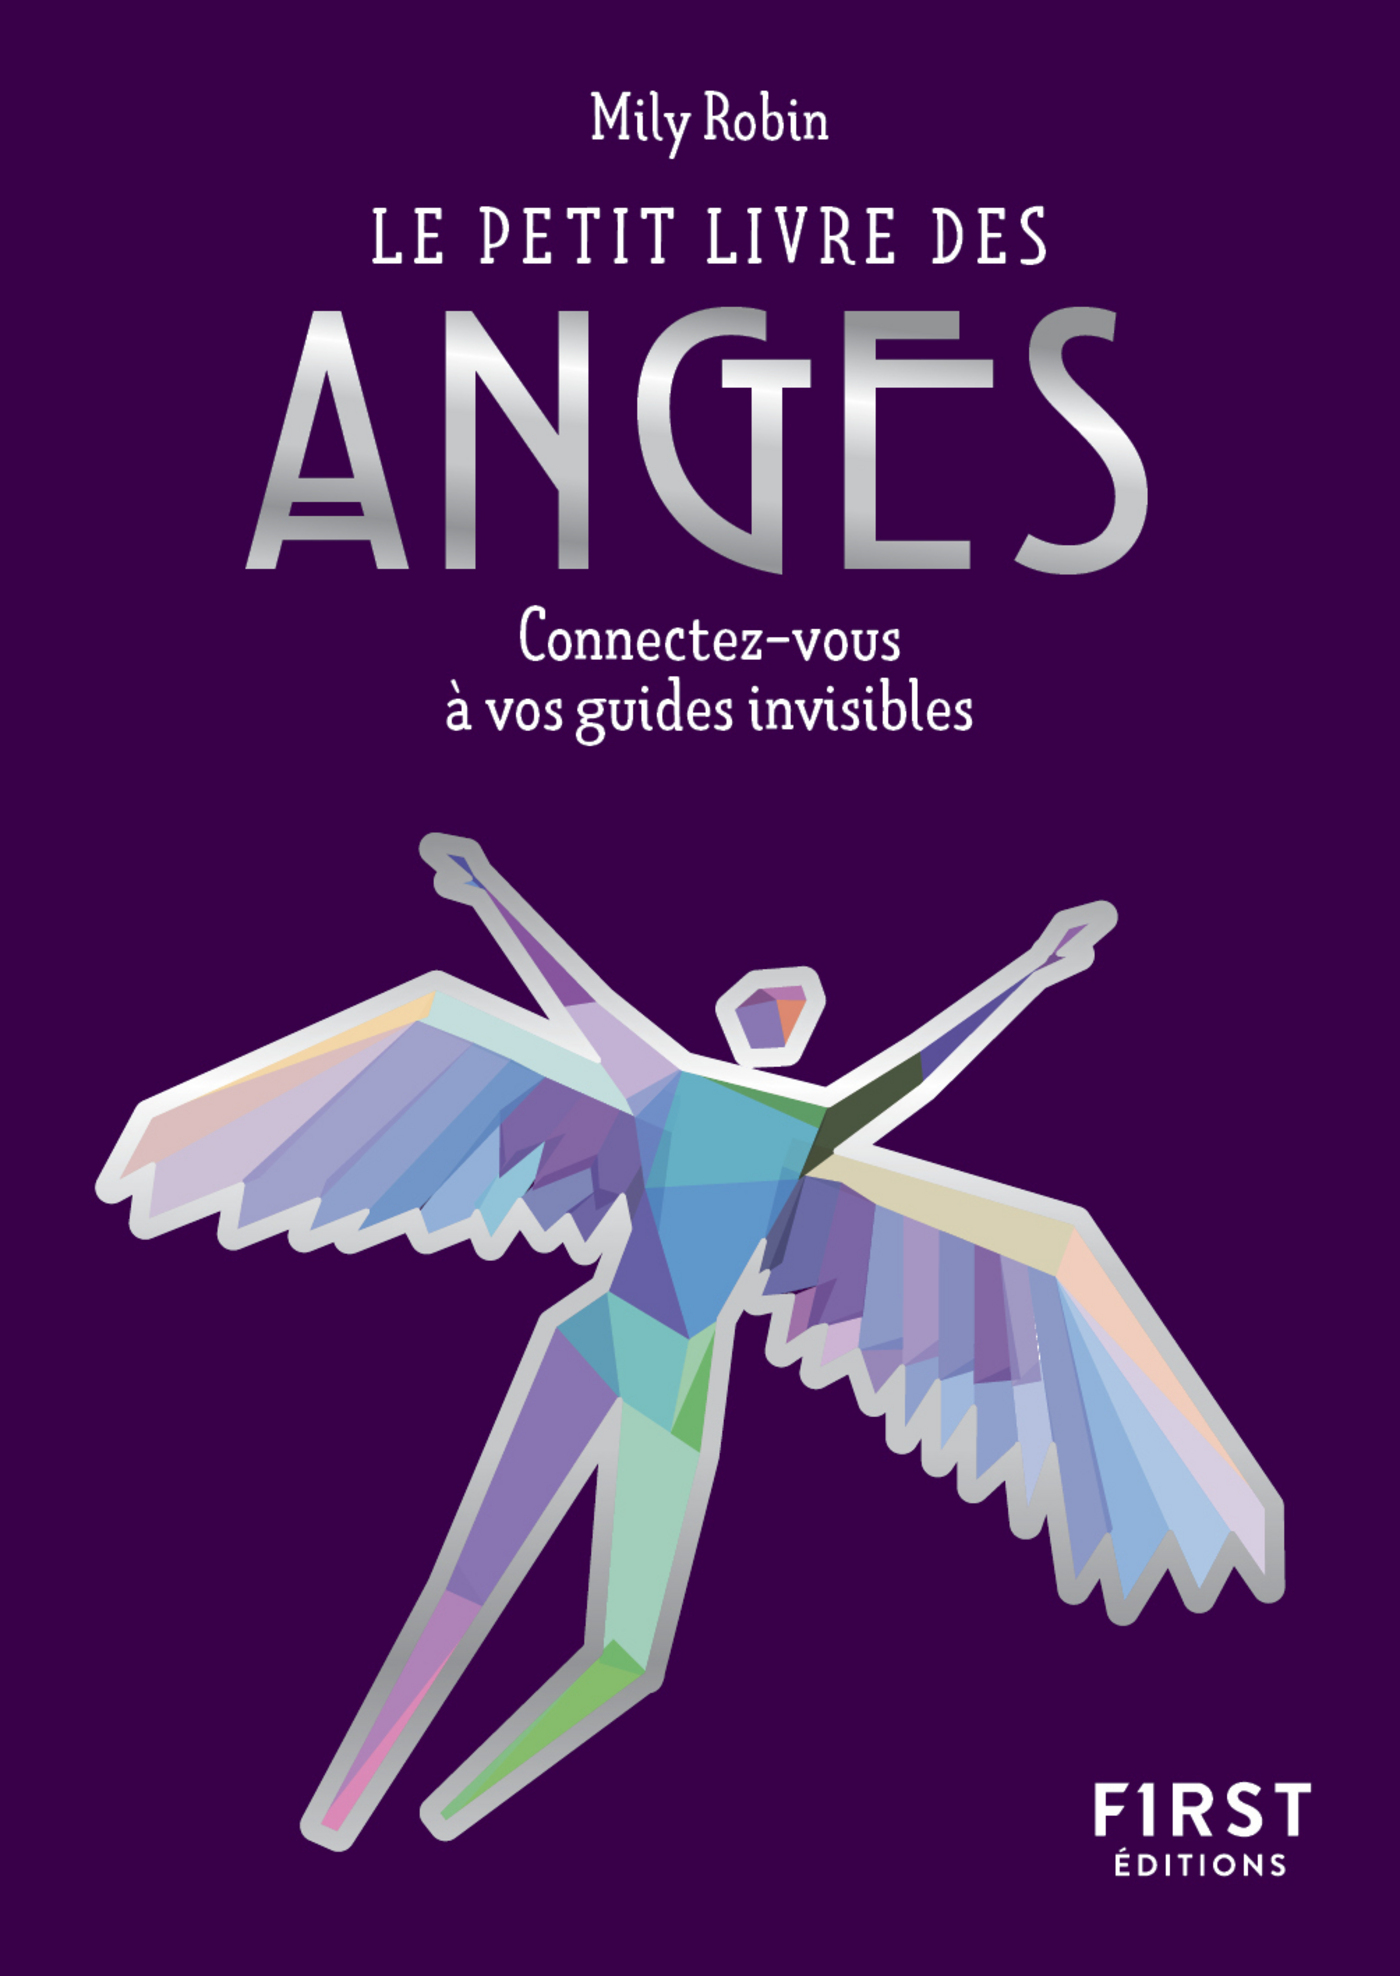 Les anges - Mily Robin